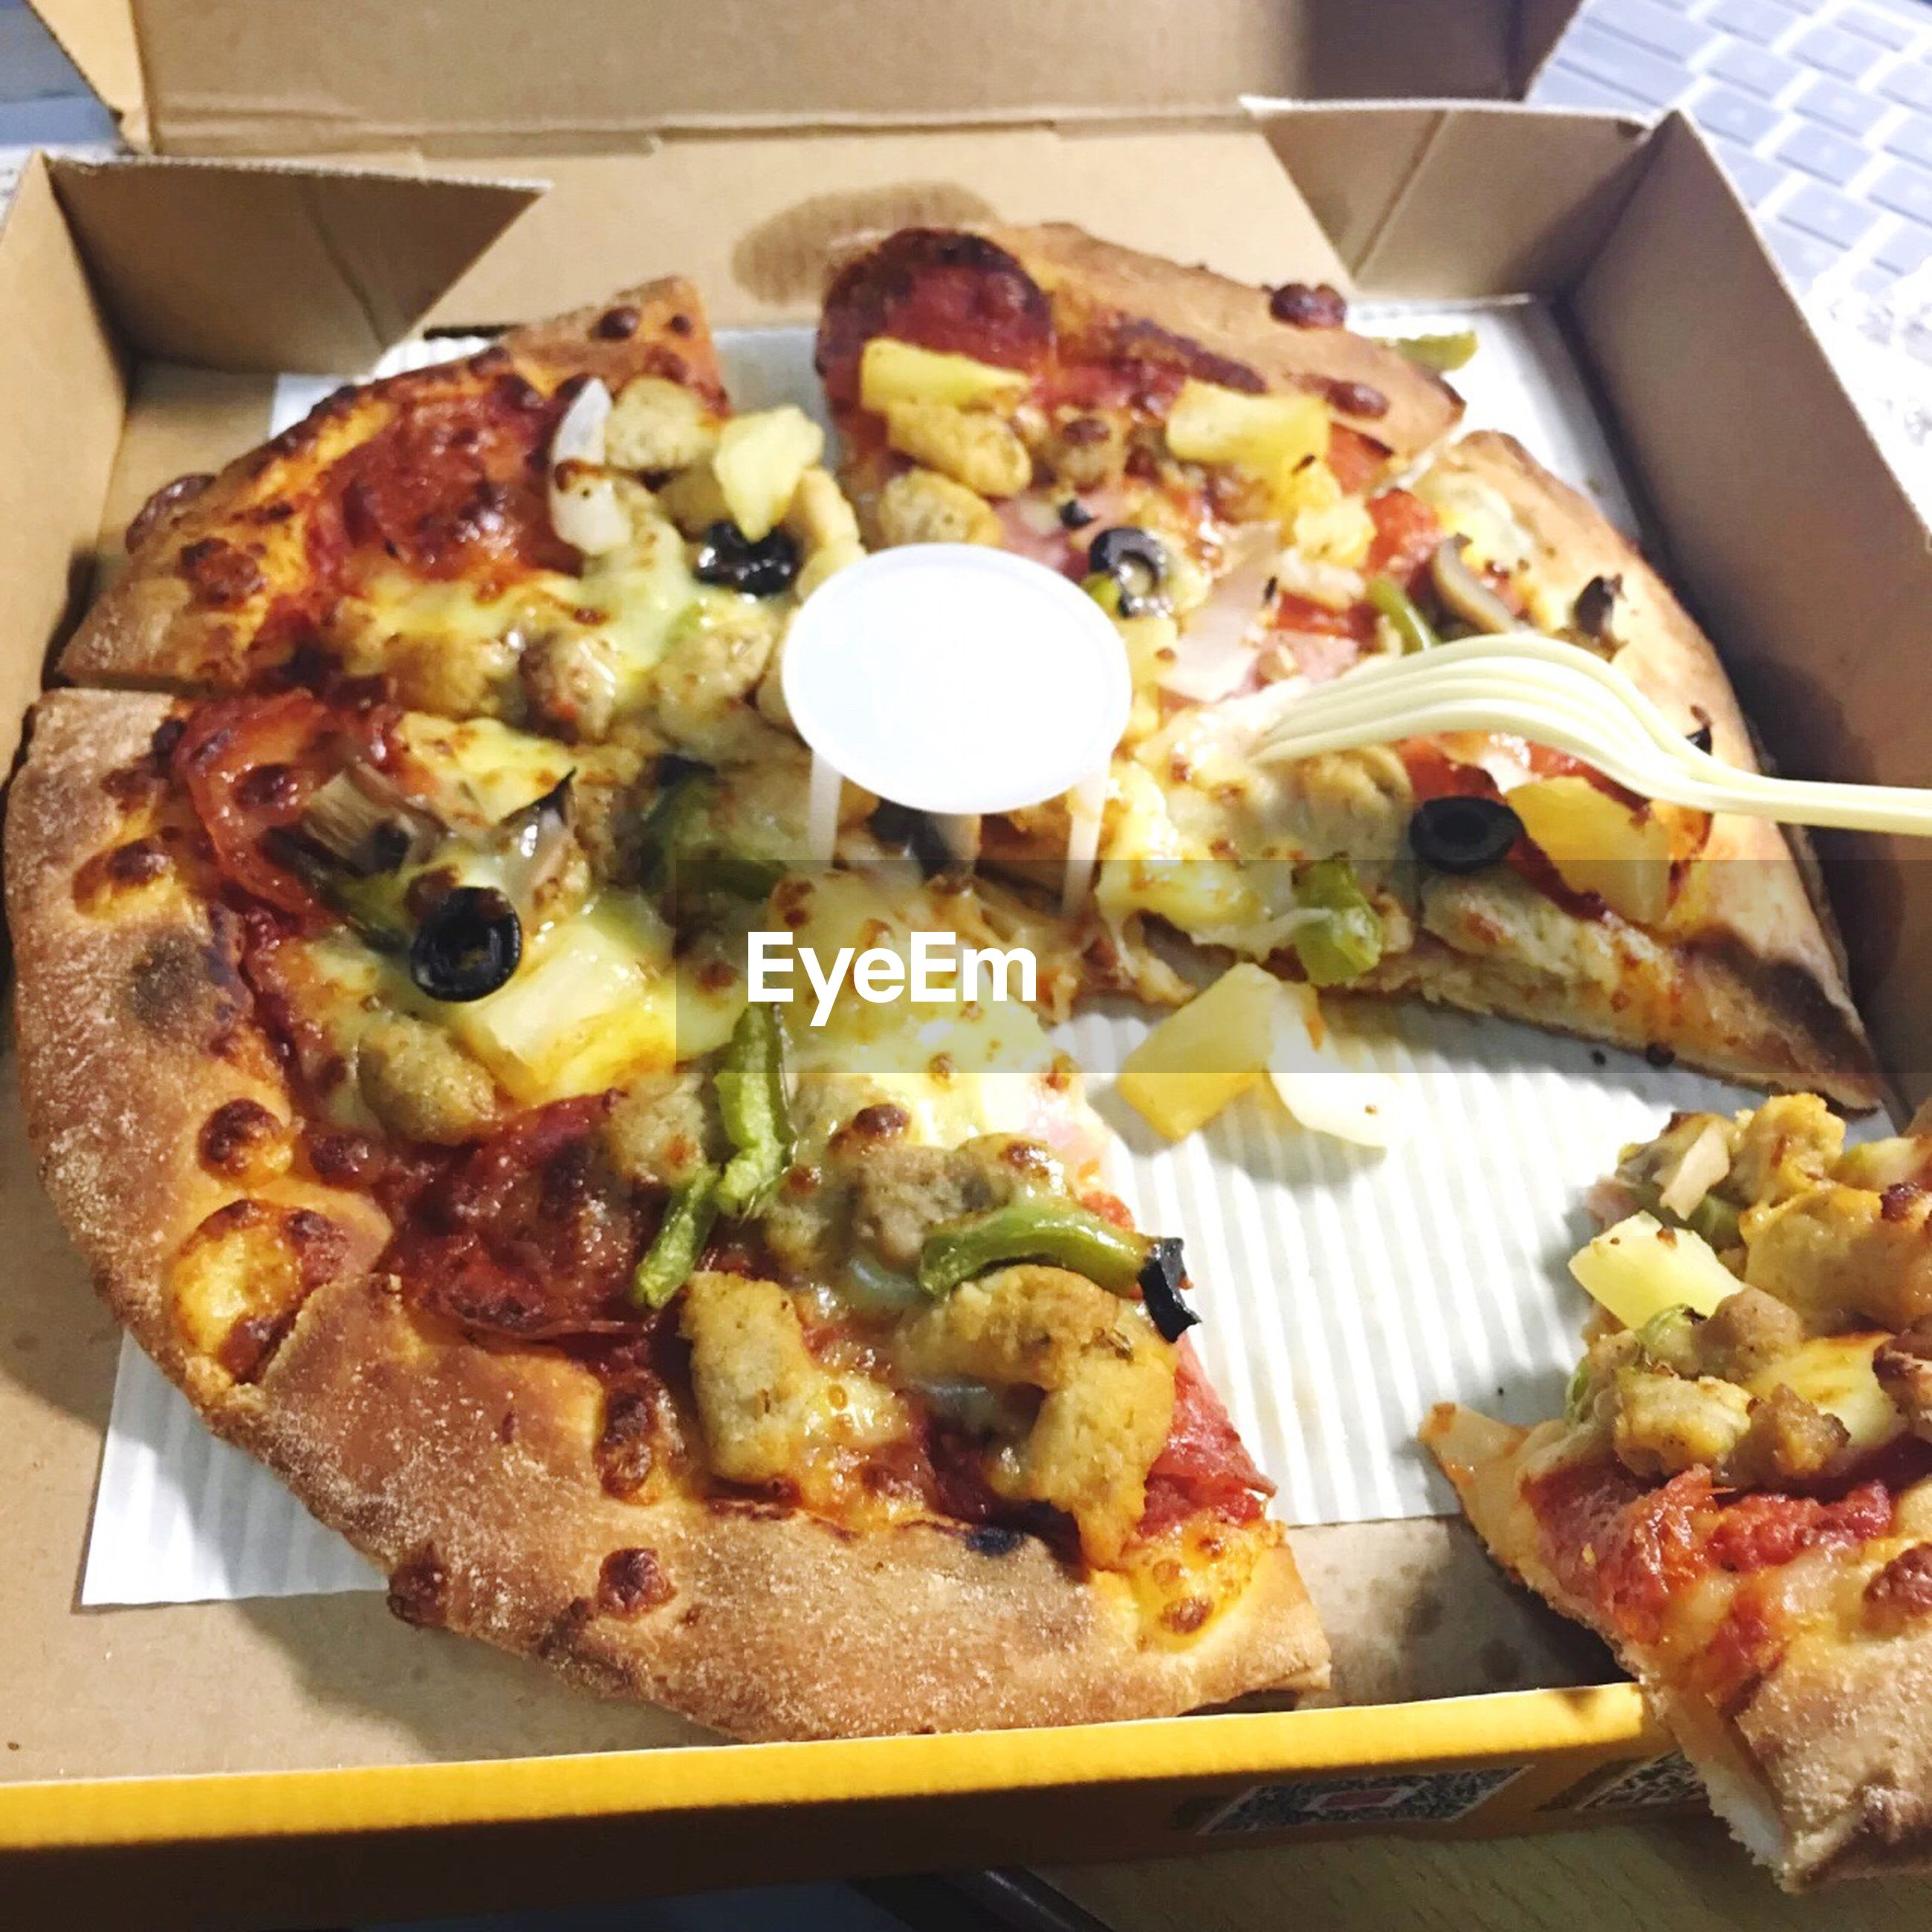 food and drink, food, freshness, ready-to-eat, indoors, plate, still life, table, meal, meat, serving size, high angle view, healthy eating, indulgence, close-up, served, gourmet, pizza, no people